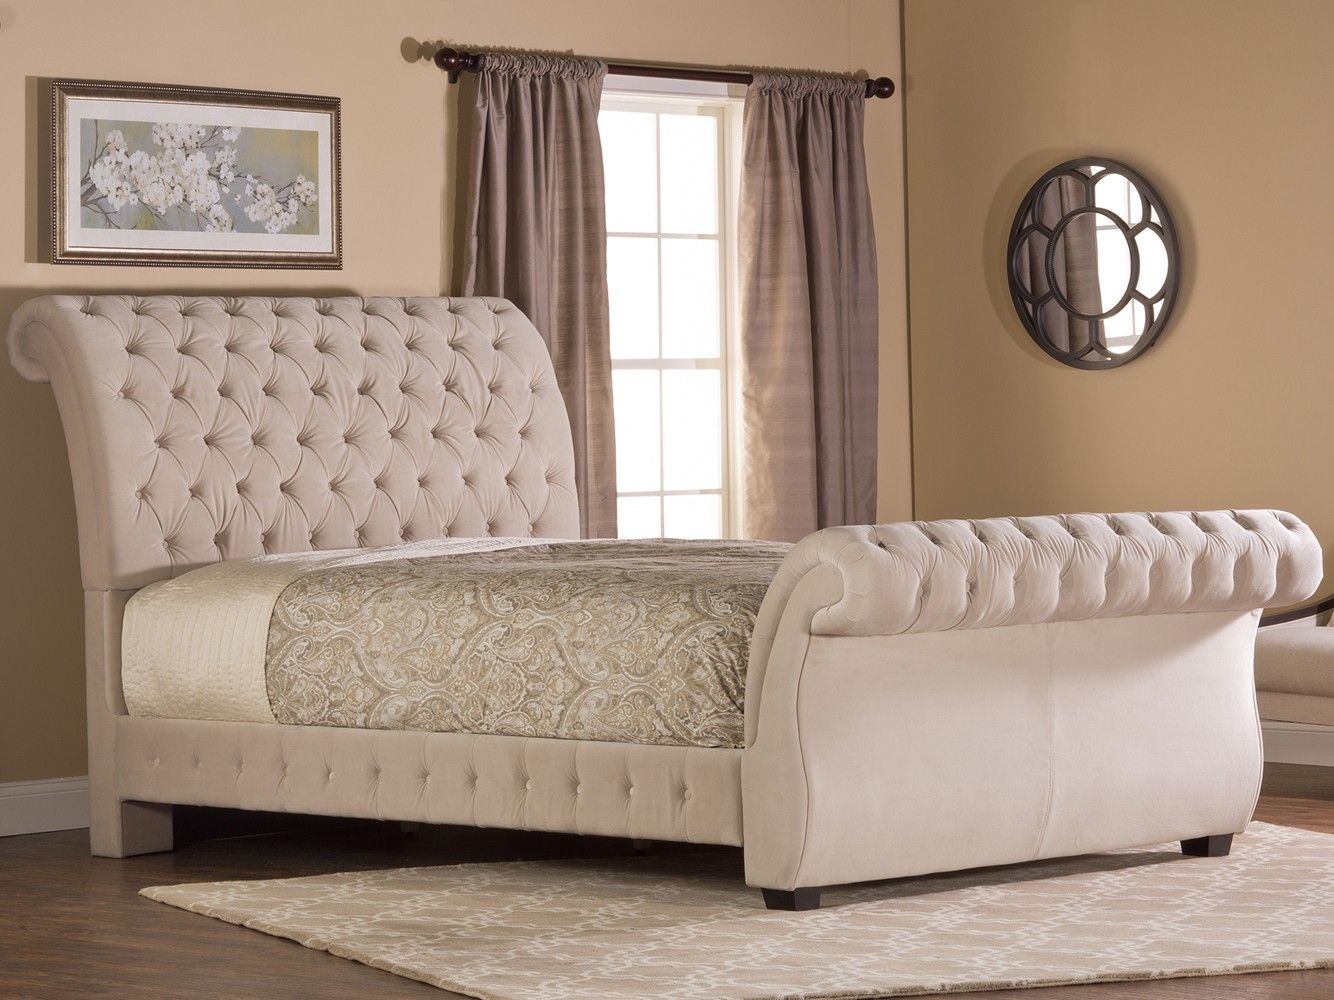 Ay Fabric Upholstered Bed In Buckwheat By Hilale Furniture Diamond Tufted Upholstery Sleigh